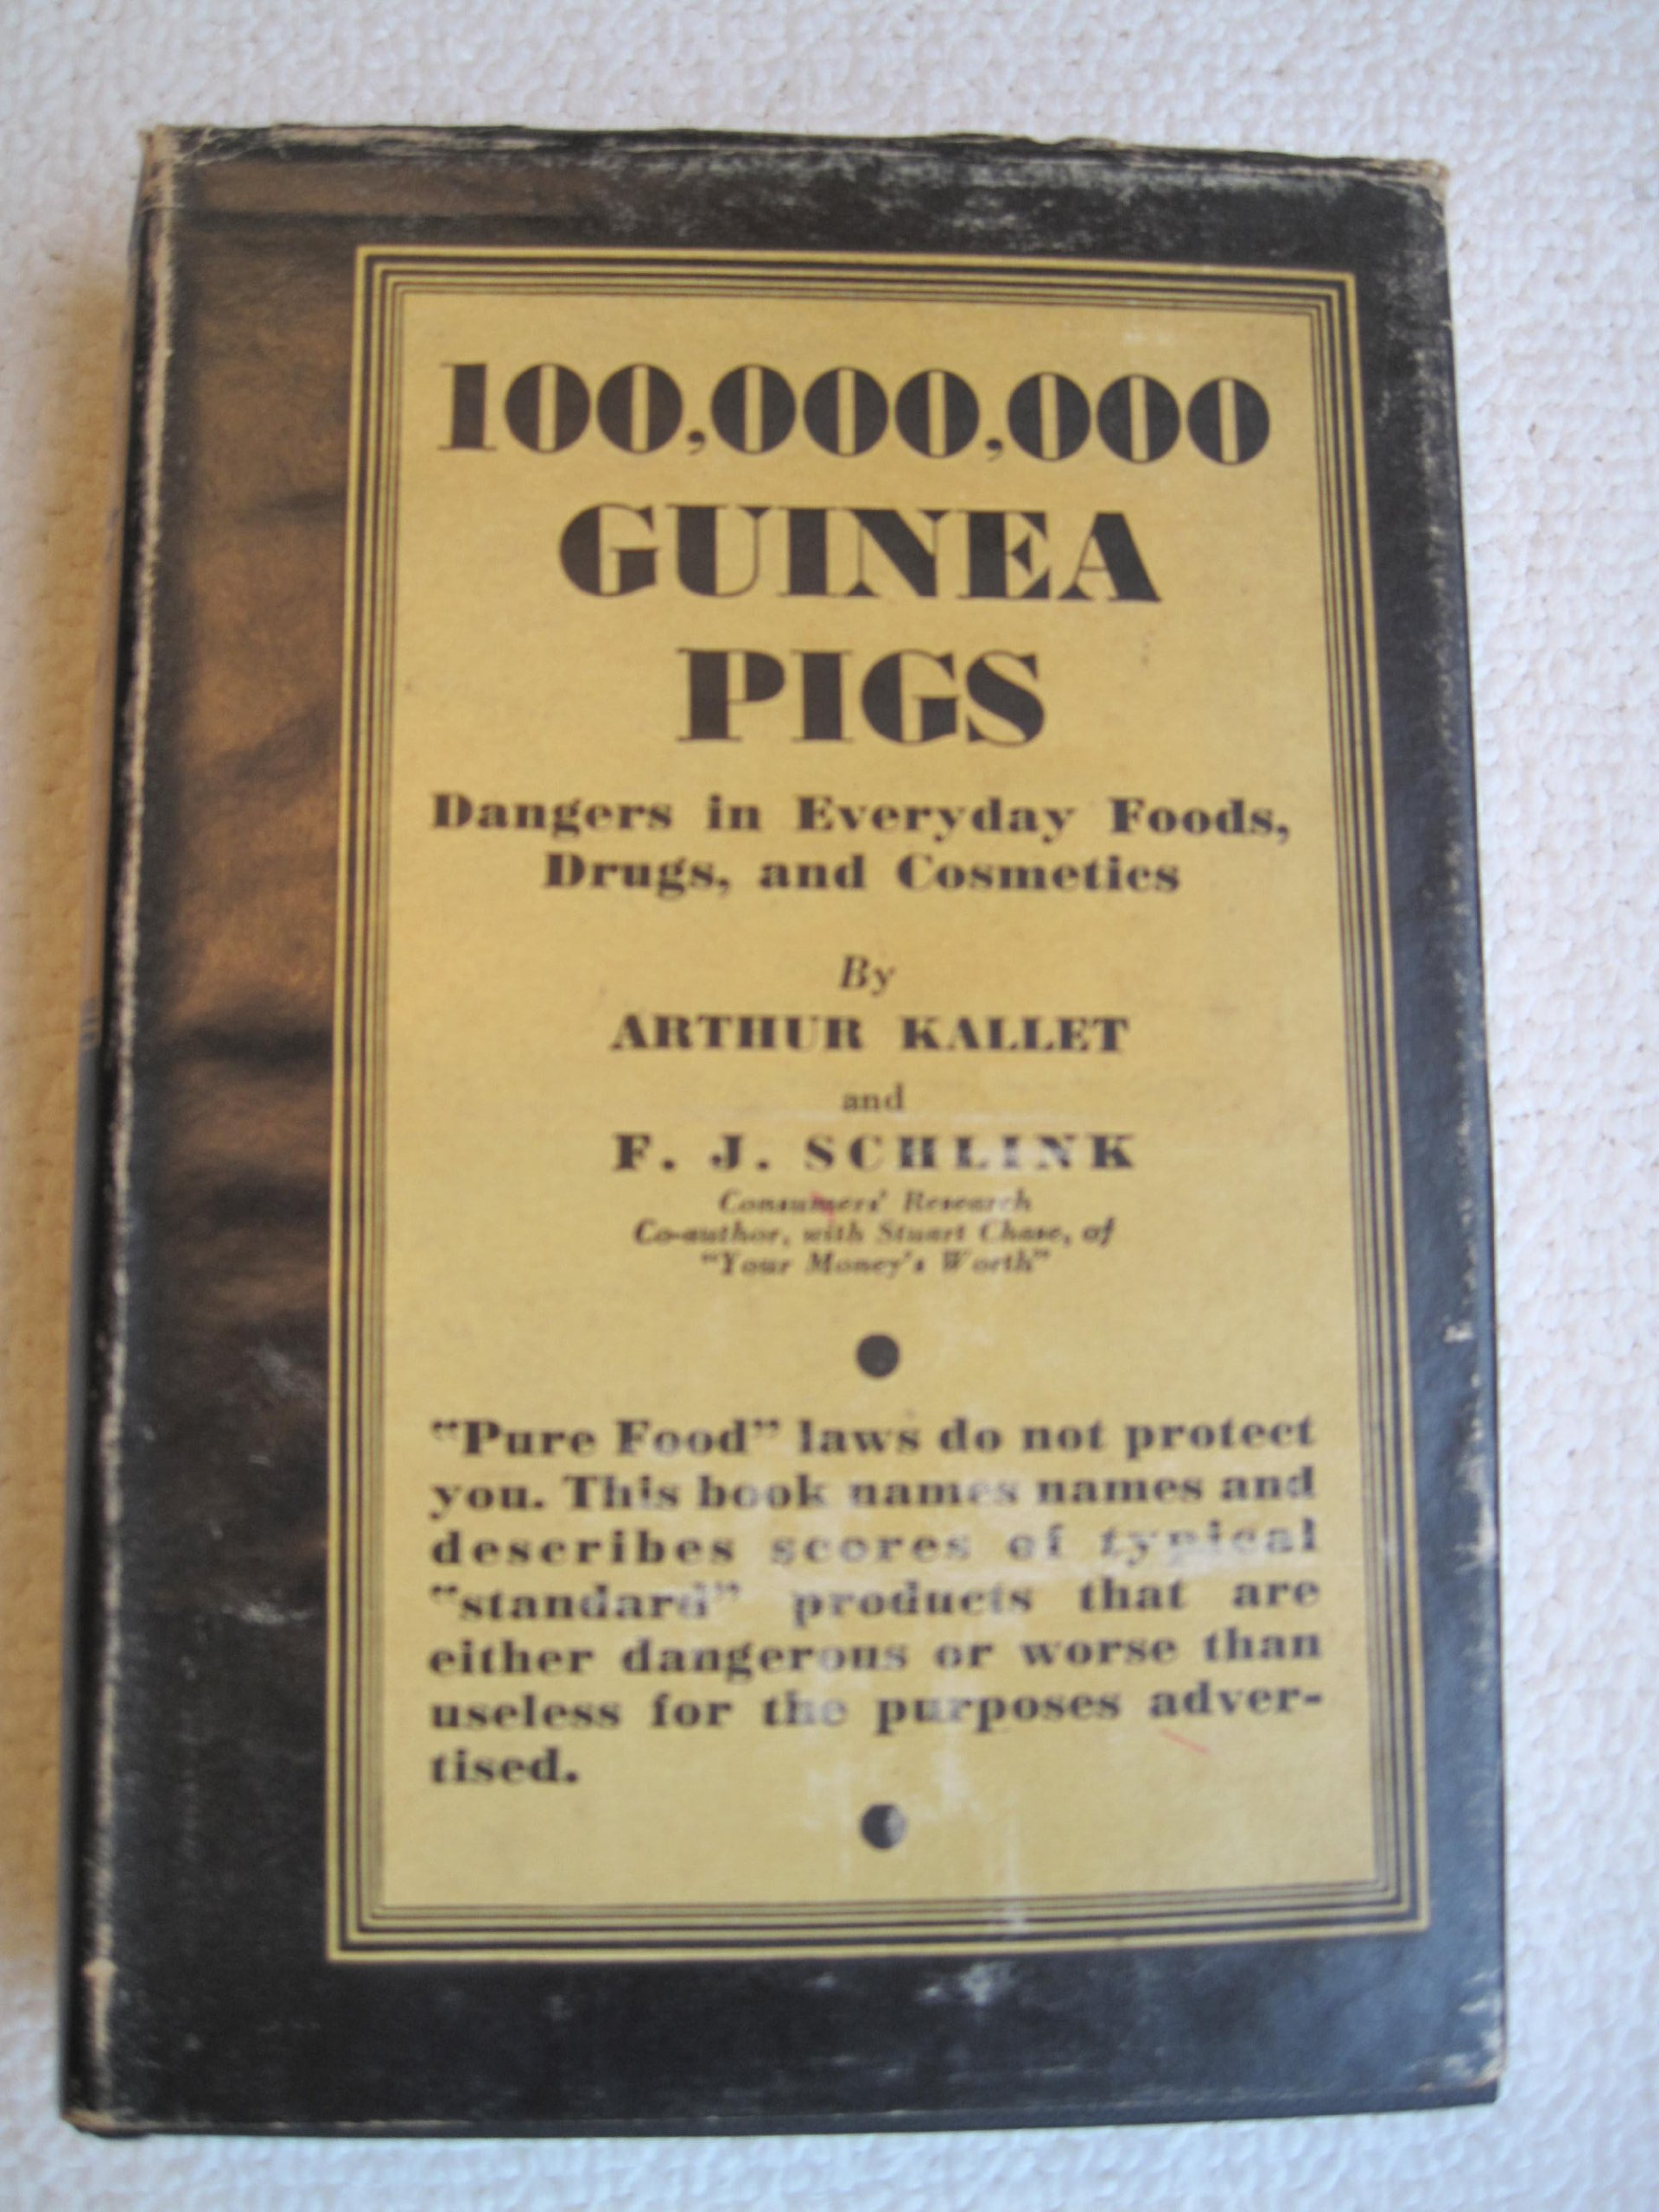 100, 000, 000 Guinea Pigs: Dangers in Everyday Foods, Drugs, and Cosmetics:  F. J. Schlink (Author) Arthur Kallet (Author): Amazon.com: Books